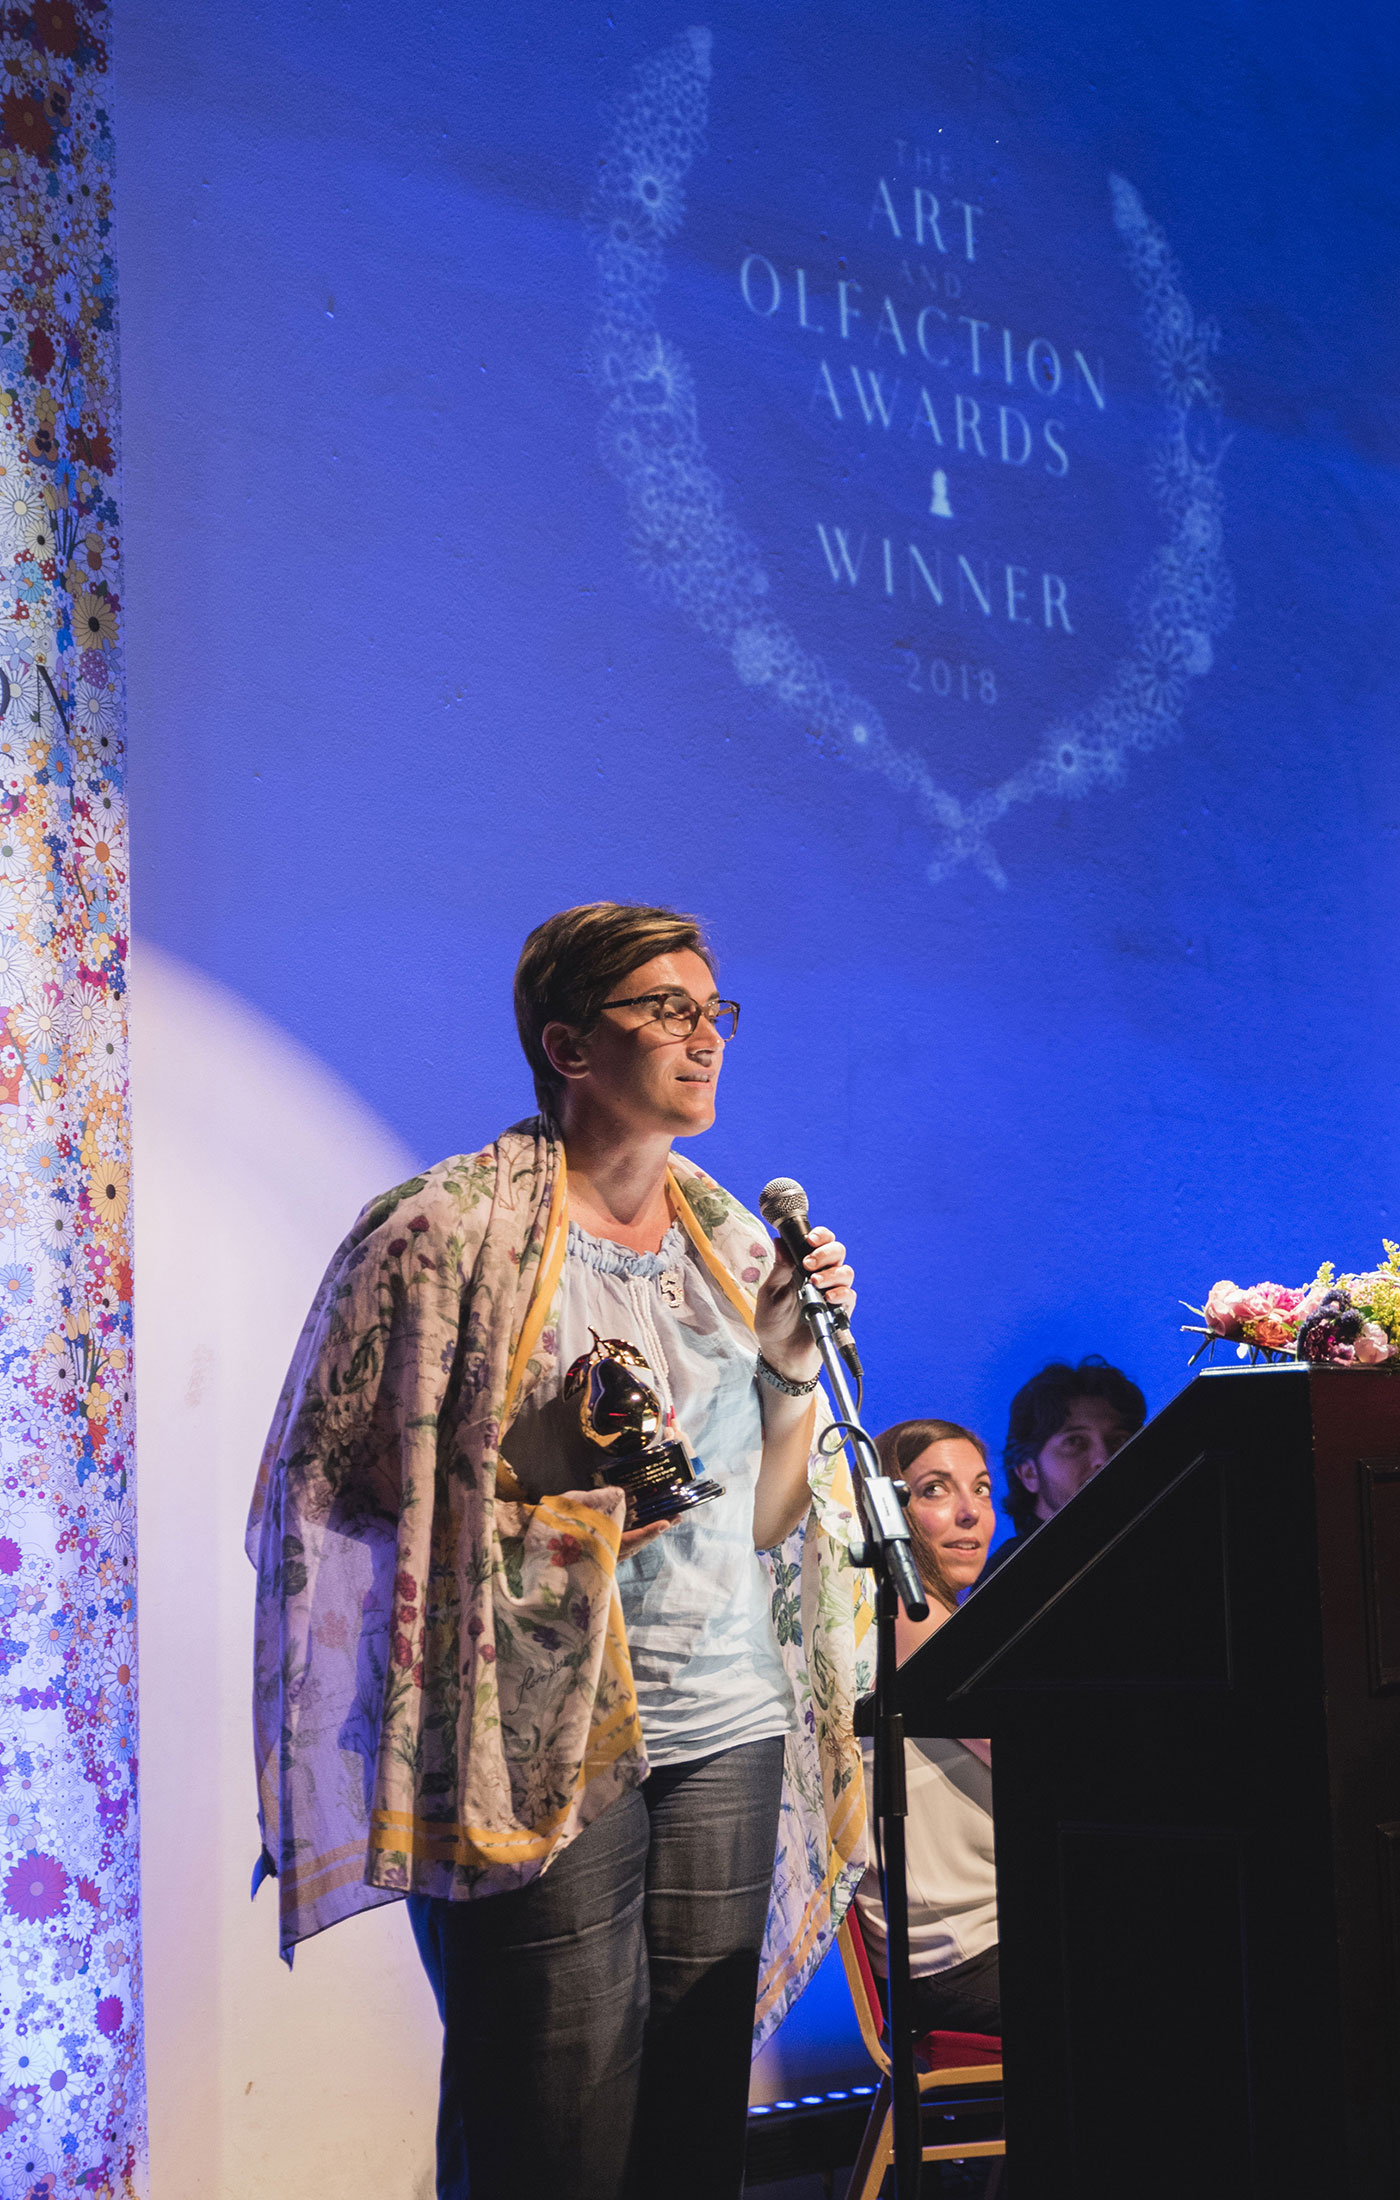 Virginie Roux, at The Art and Olfaction Awards, Photo by Marina Chichi